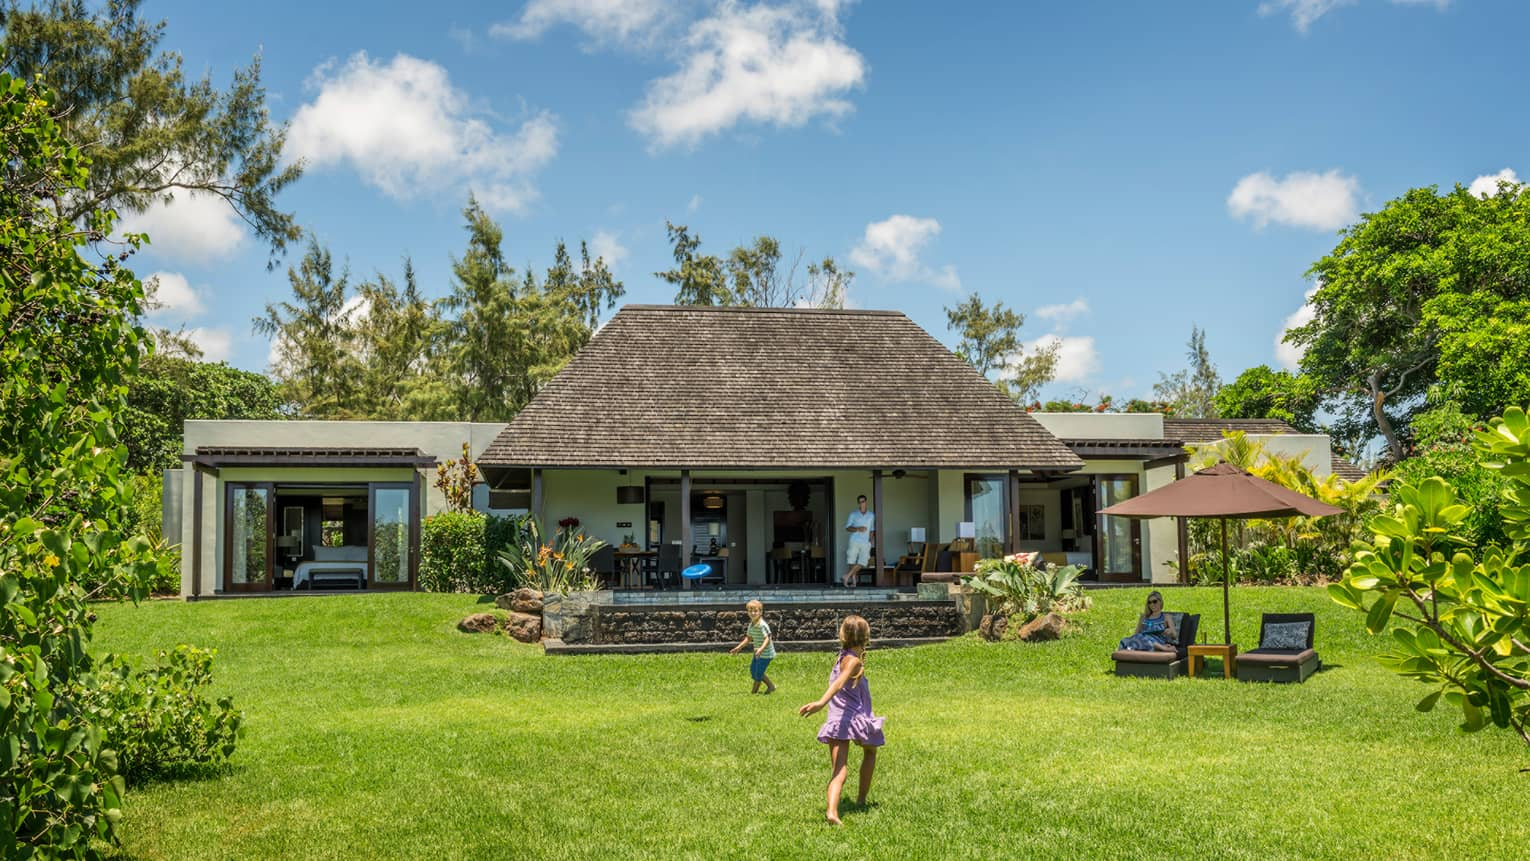 Young children play on green lawn in front of bungalow as dad watches from covered patio